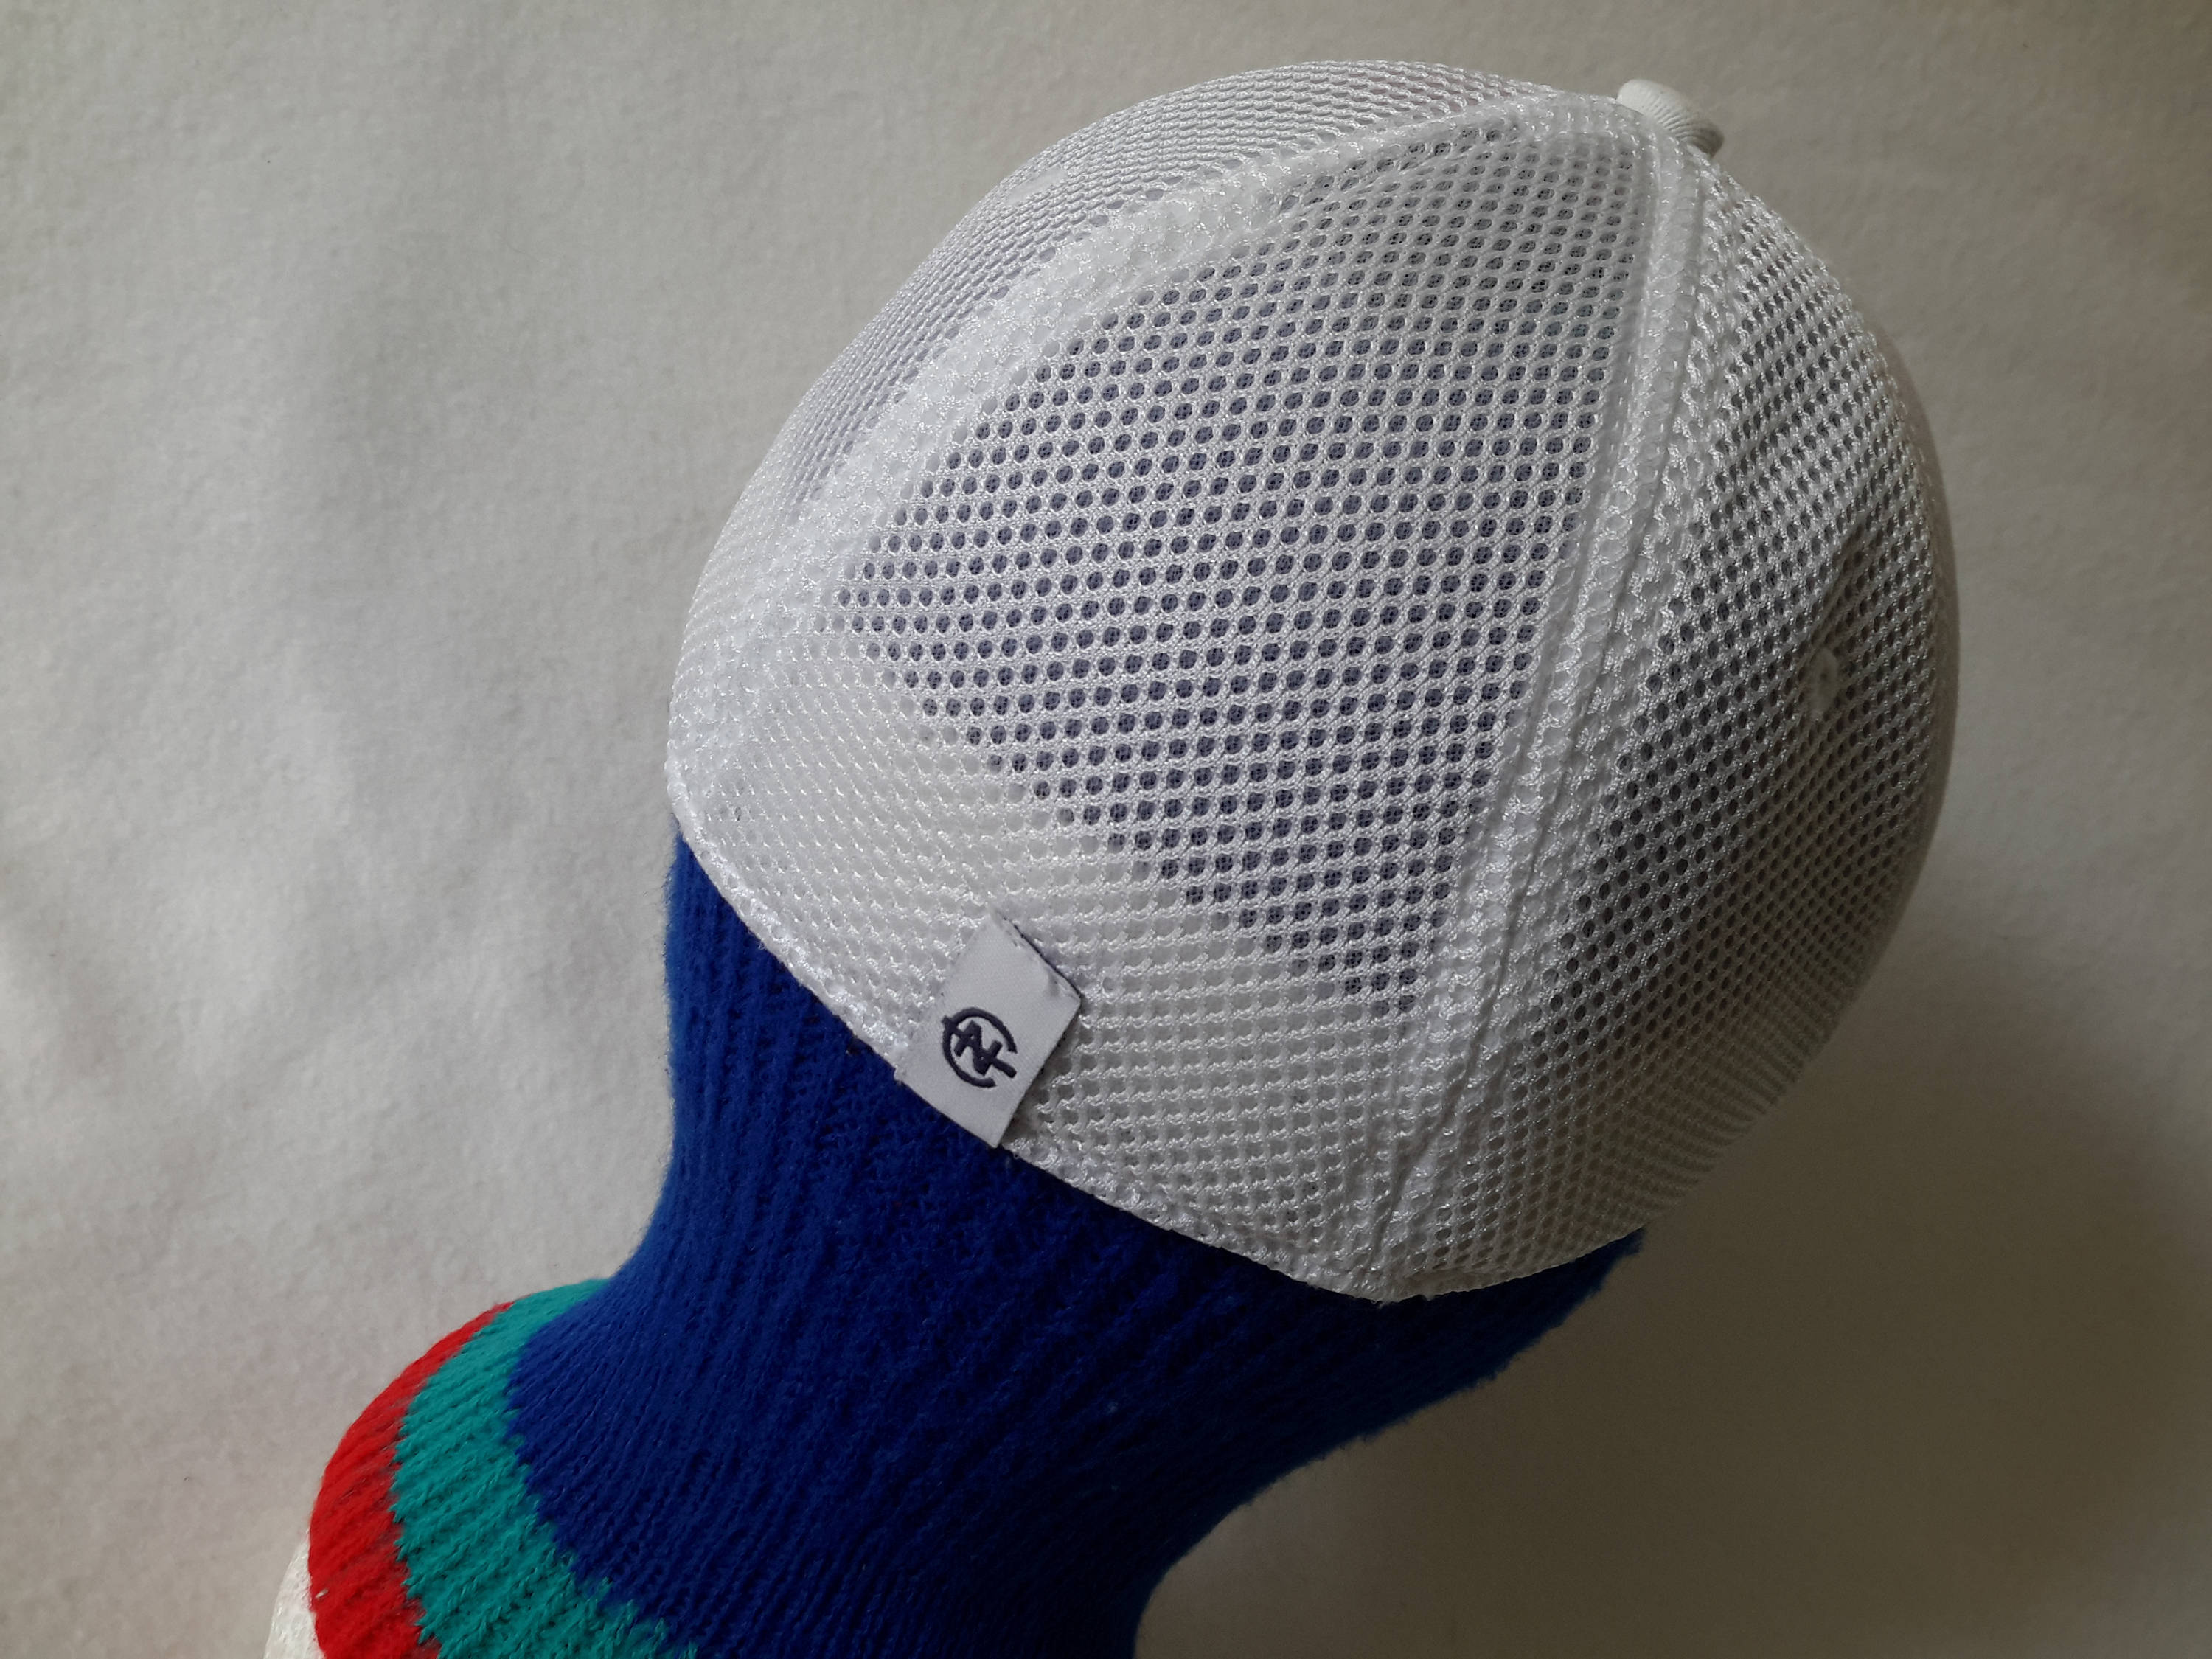 Vtg Nautica Competition White OSFA Flex Fit Nautech Fleece hat boat cap Retro Dope polo sport tommy Hilfiger